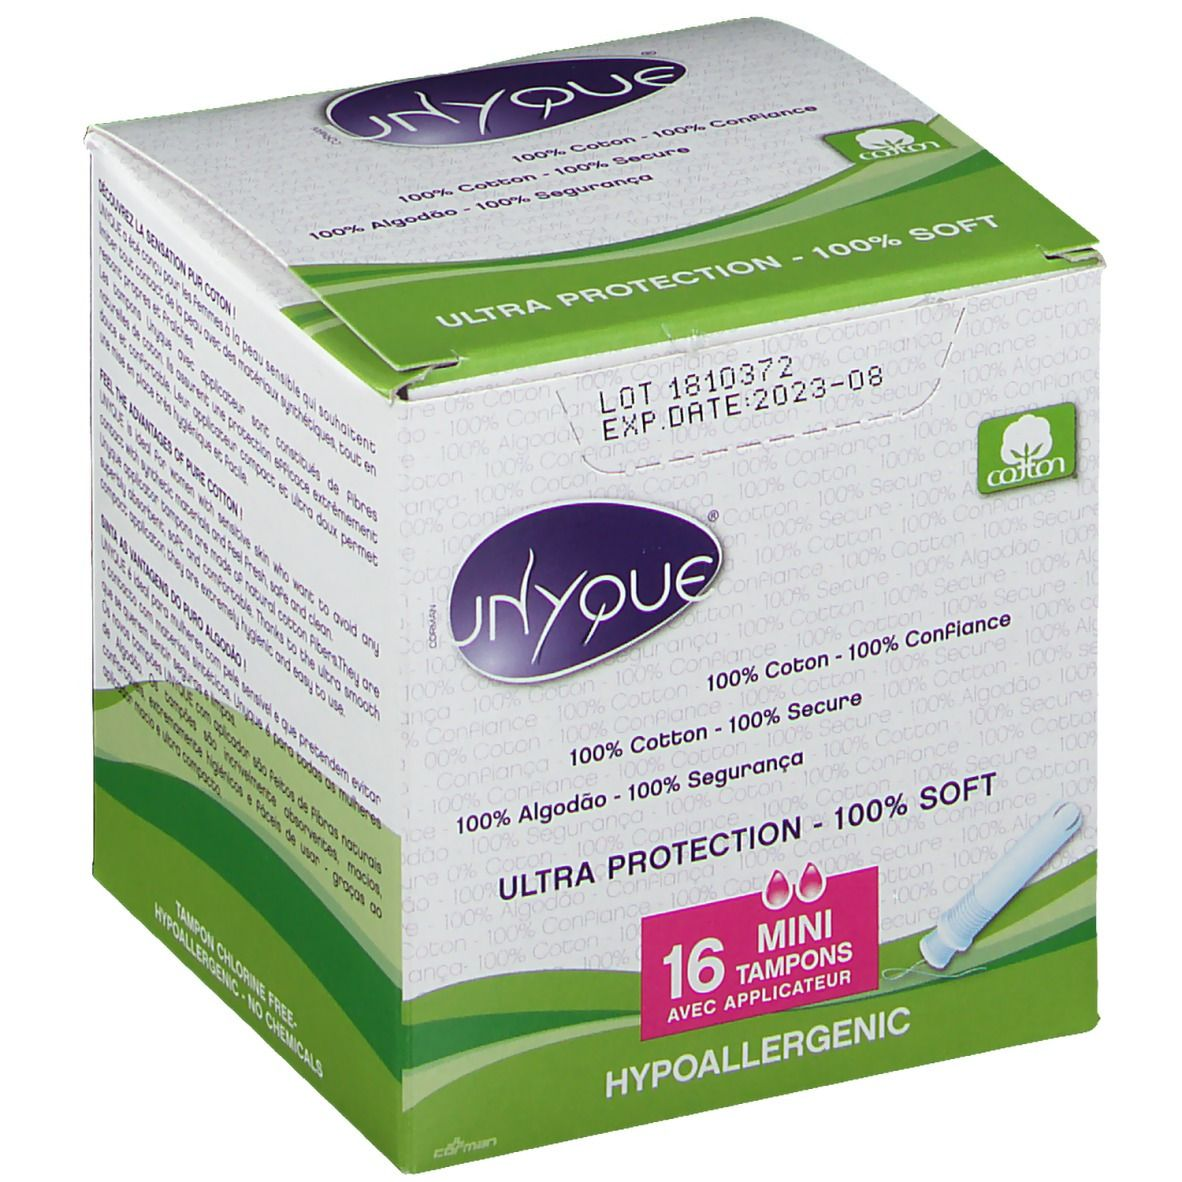 UNYQUE® Ultra Protection Mini Tampons mit Applikator